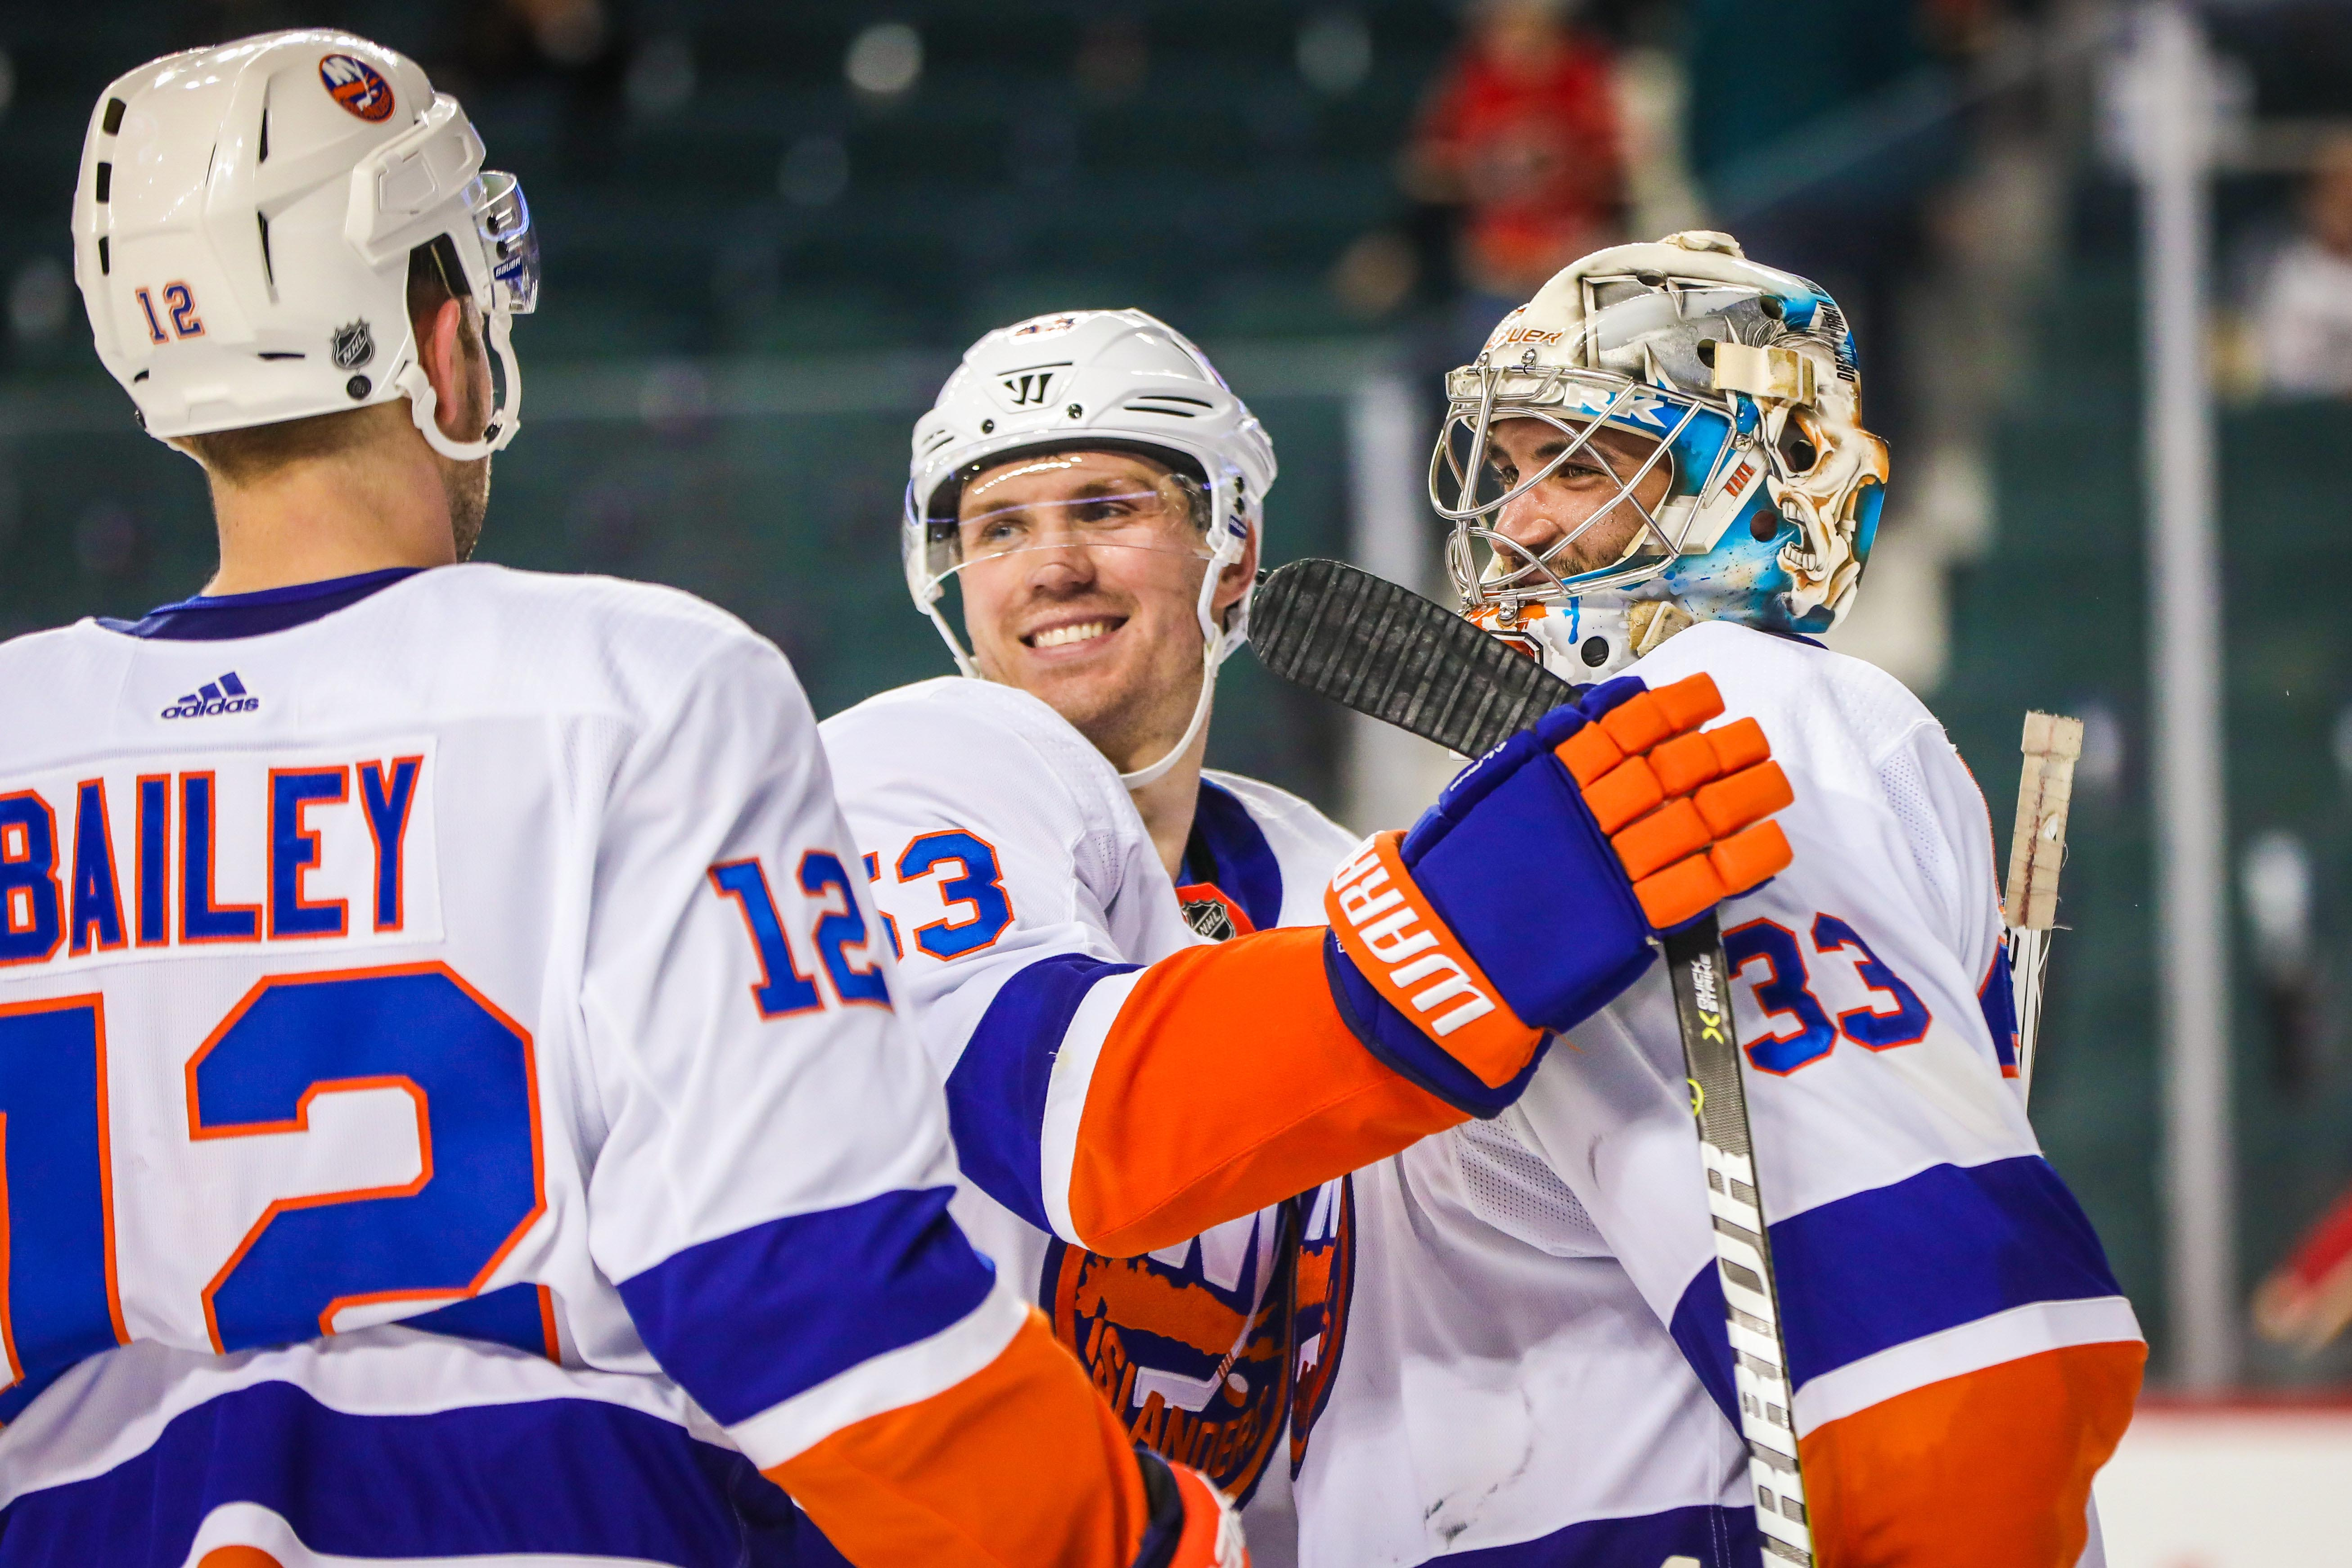 Mar 11, 2018; Calgary, Alberta, CAN; New York Islanders goaltender Christopher Gibson (33) celebrate with teammates after defeating the Calgary Flames at Scotiabank Saddledome. Mandatory Credit: Sergei Belski-USA TODAY Sports